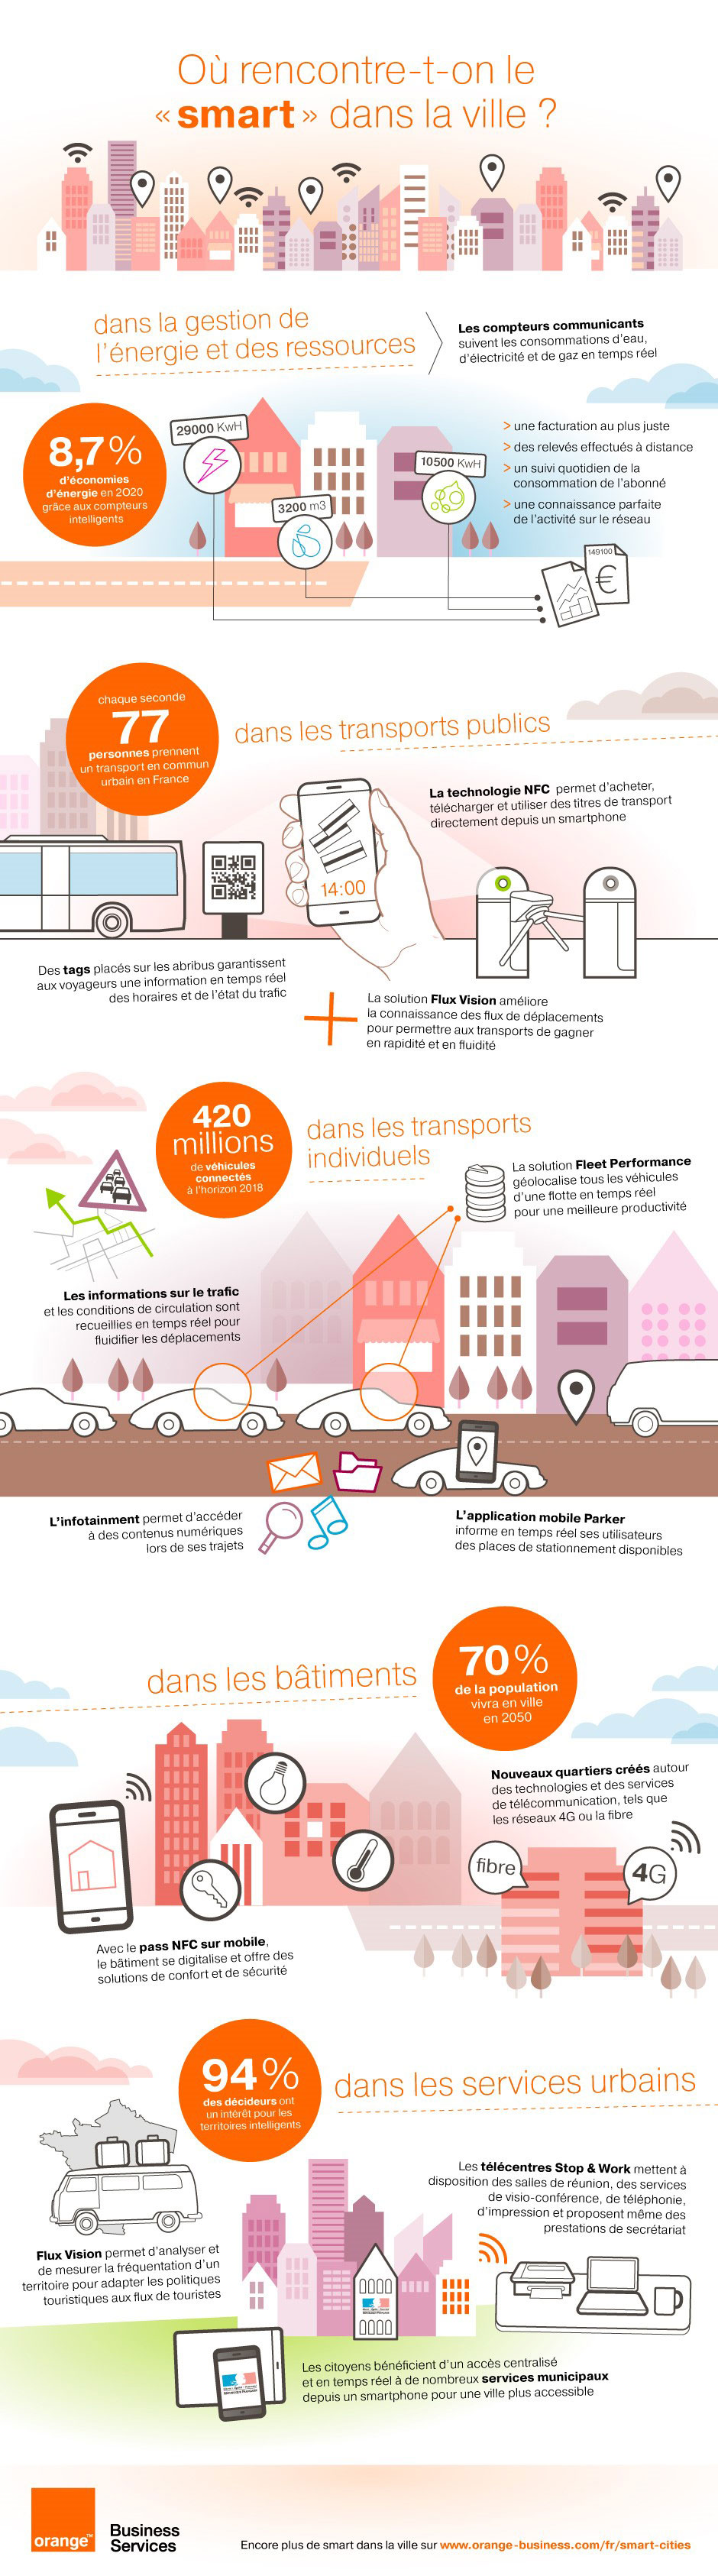 Orange-COP21-Smart-city-Infographie (1)